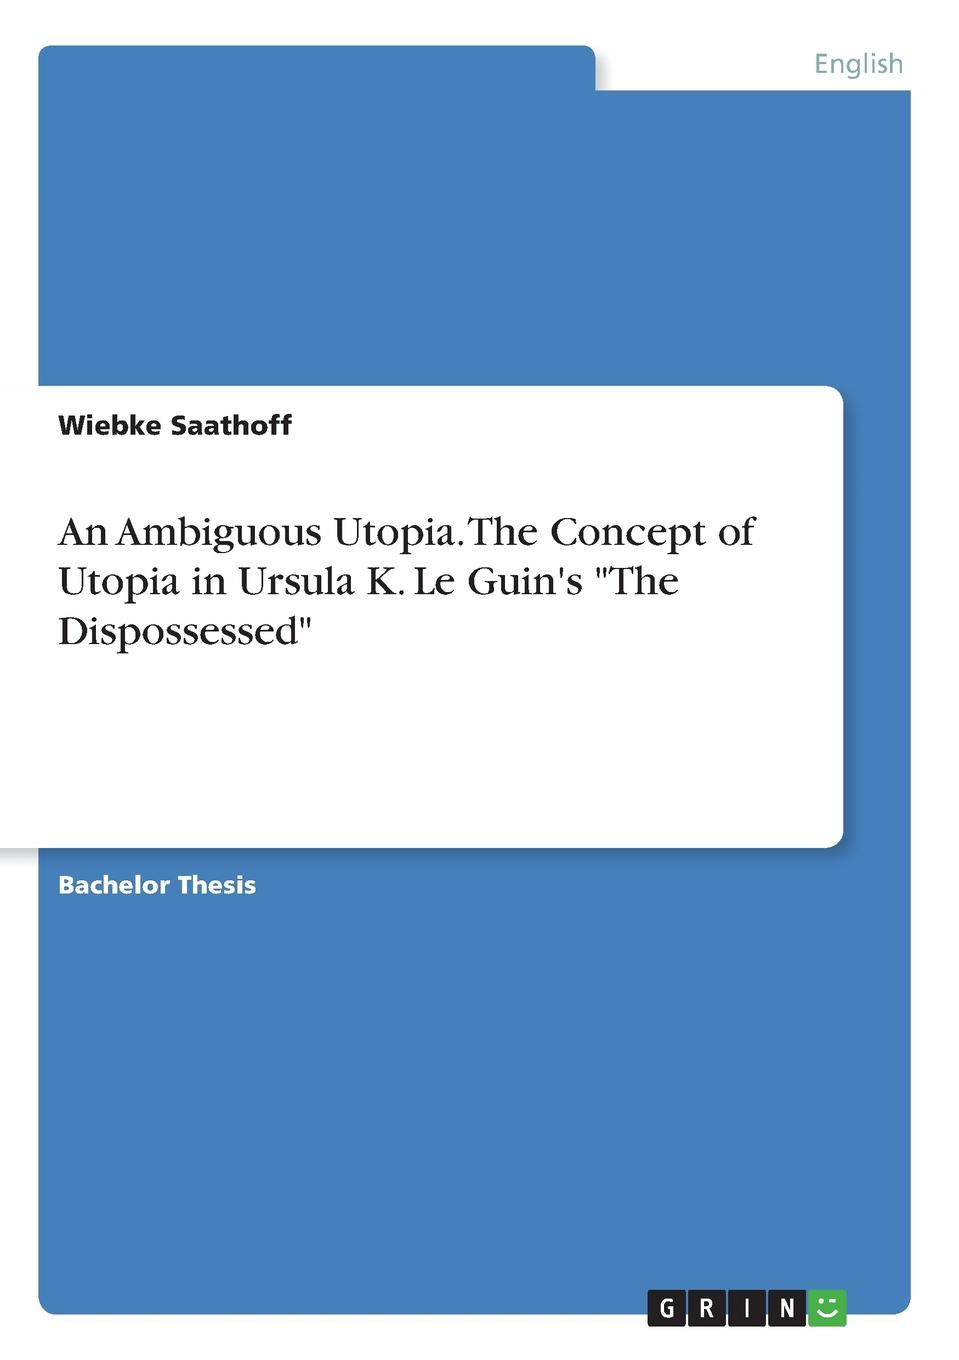 Wiebke Saathoff An Ambiguous Utopia. The Concept of Utopia in Ursula K. Le Guin.s The Dispossessed doris dier the motifs of utopia and dystopia in aldous huxley s brave new world